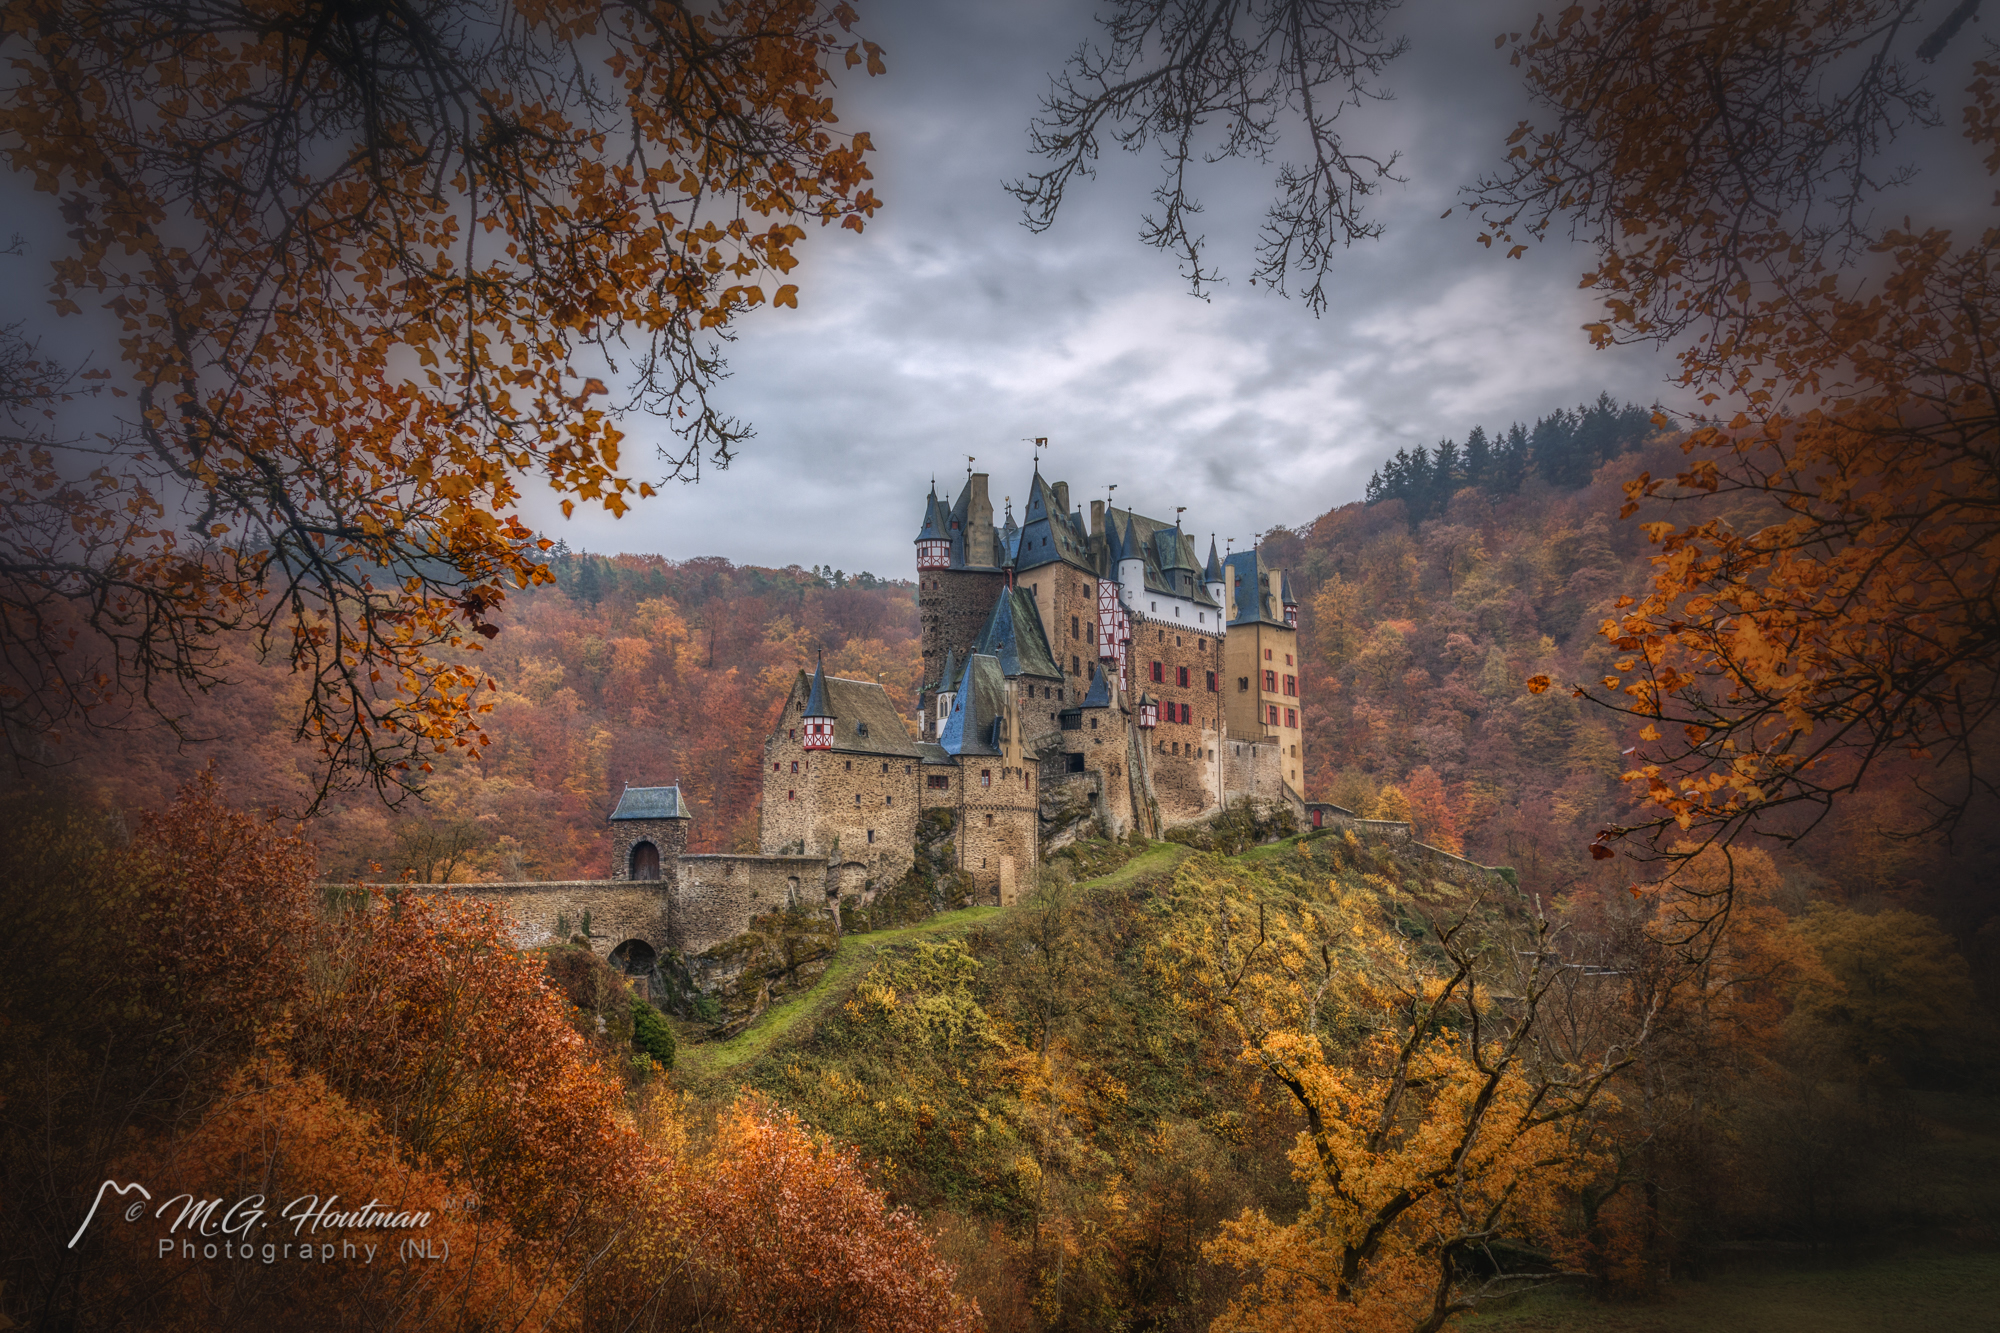 Eltz Castle (German: Burg Eltz) is a medieval castle nestled in the hills above the Moselle River between Koblenz and Trier, Germany. It is still owned by a branch of the same family (the Eltz family) that lived there in the 12th century, 33 generations ago. Bürresheim Castle (Schloss Bürresheim), Eltz Castle and Lissingen Castle are the only castles on the left bank of the Rhine in Rhineland-Palatinate which have never been destroyed.